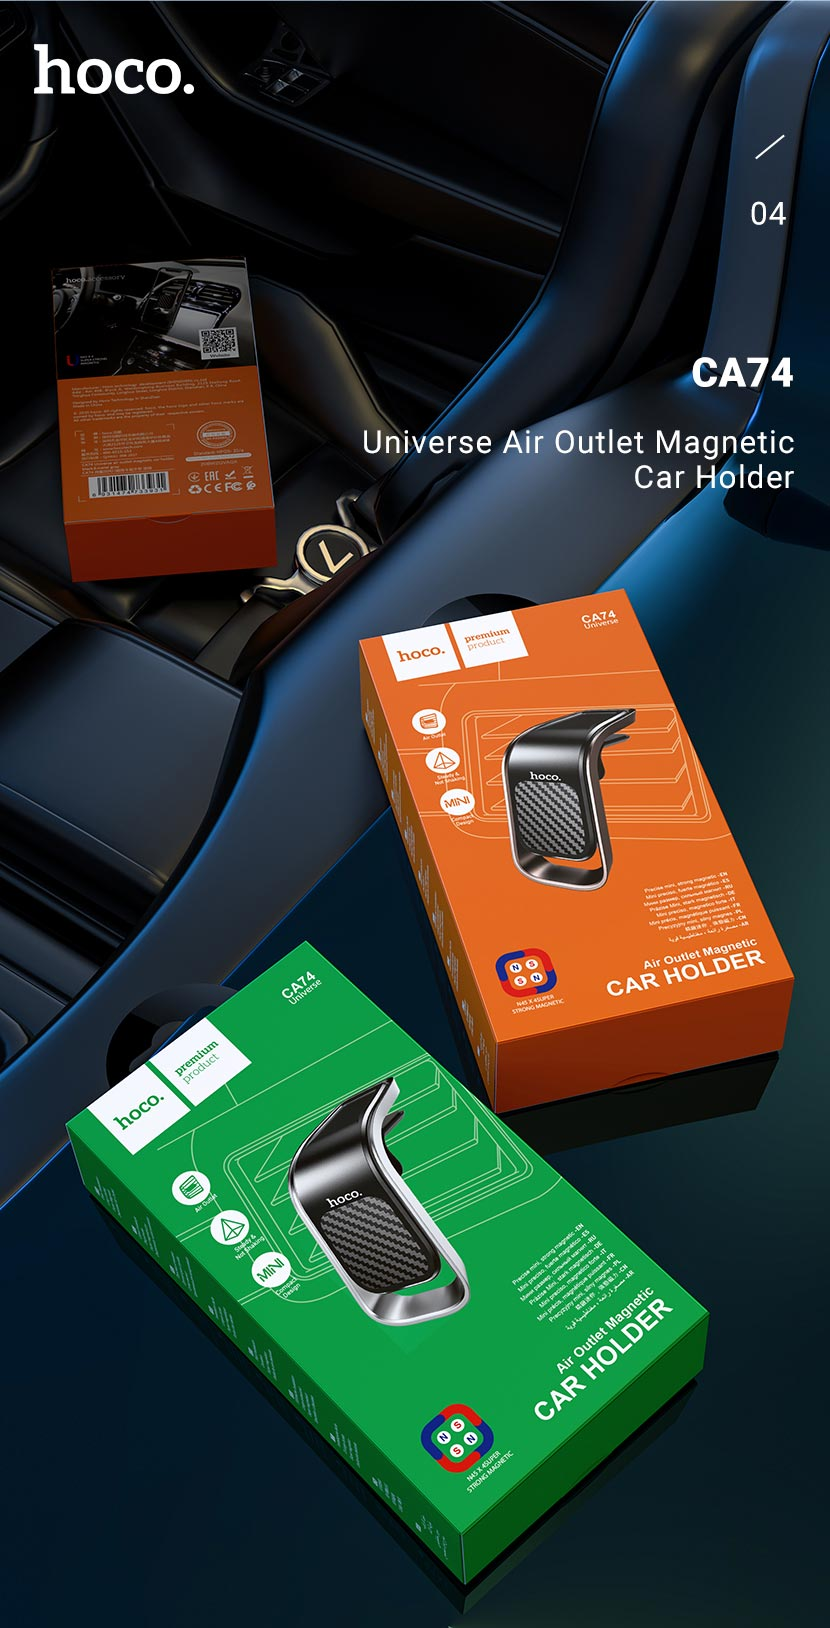 hoco news ca74 universe air outlet magnetic car holder package